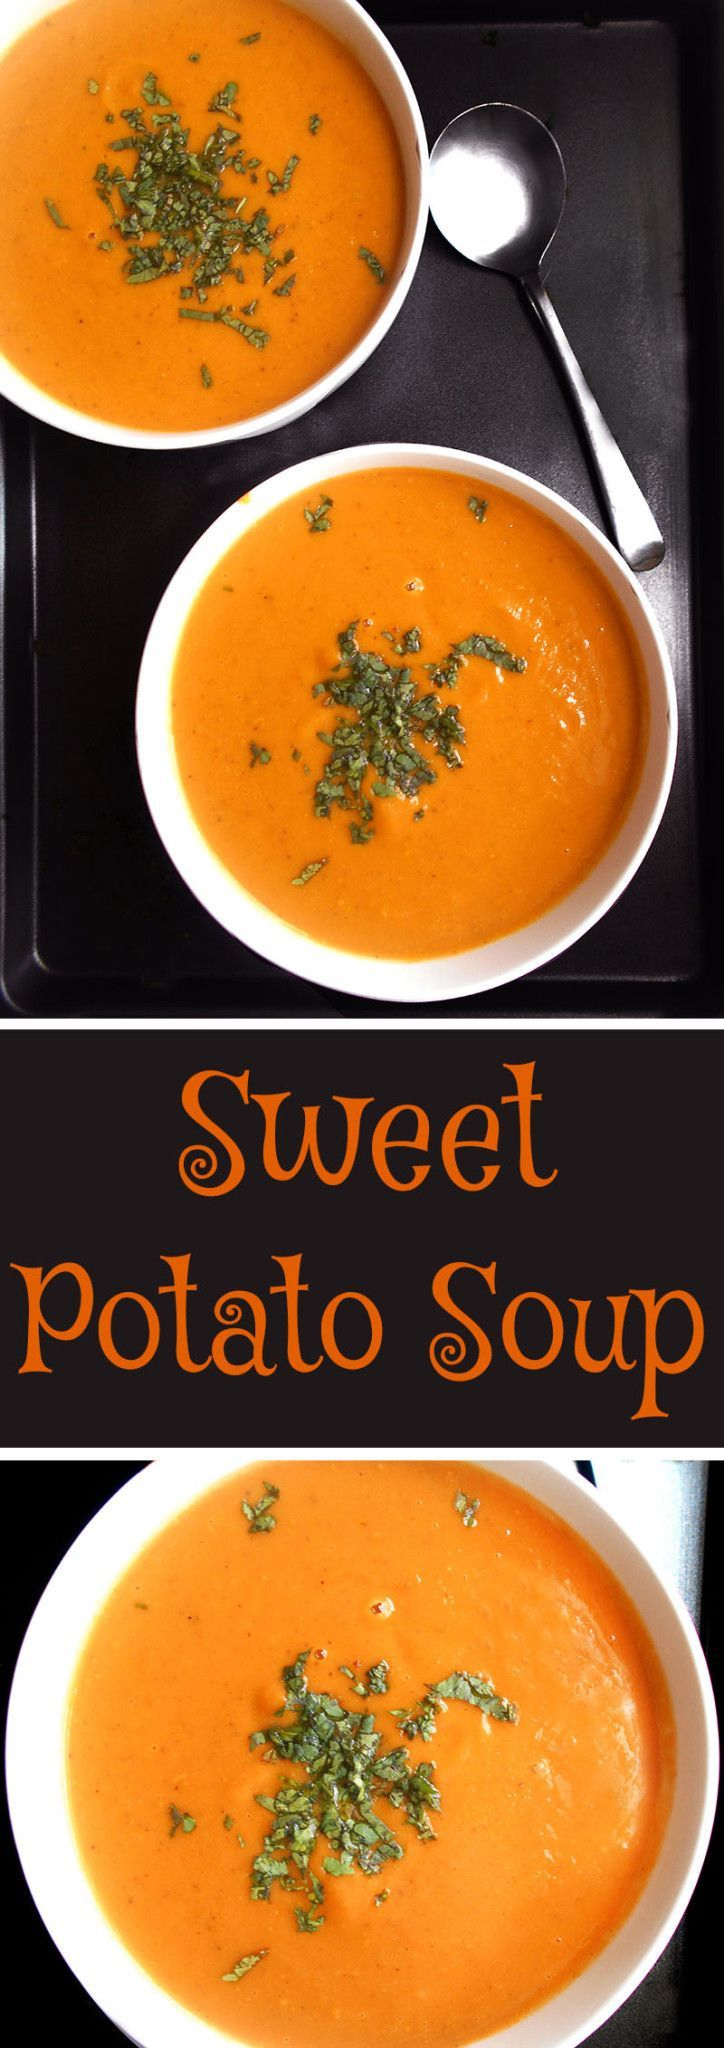 Make this easy sweet potato soup recipe if you are looking for quick dinner ideas. Vegan, Vegetarian and Gluten free. Homemade soup is the best kind of soup. Lo Carb and packed with vitamins #Sundaysupper